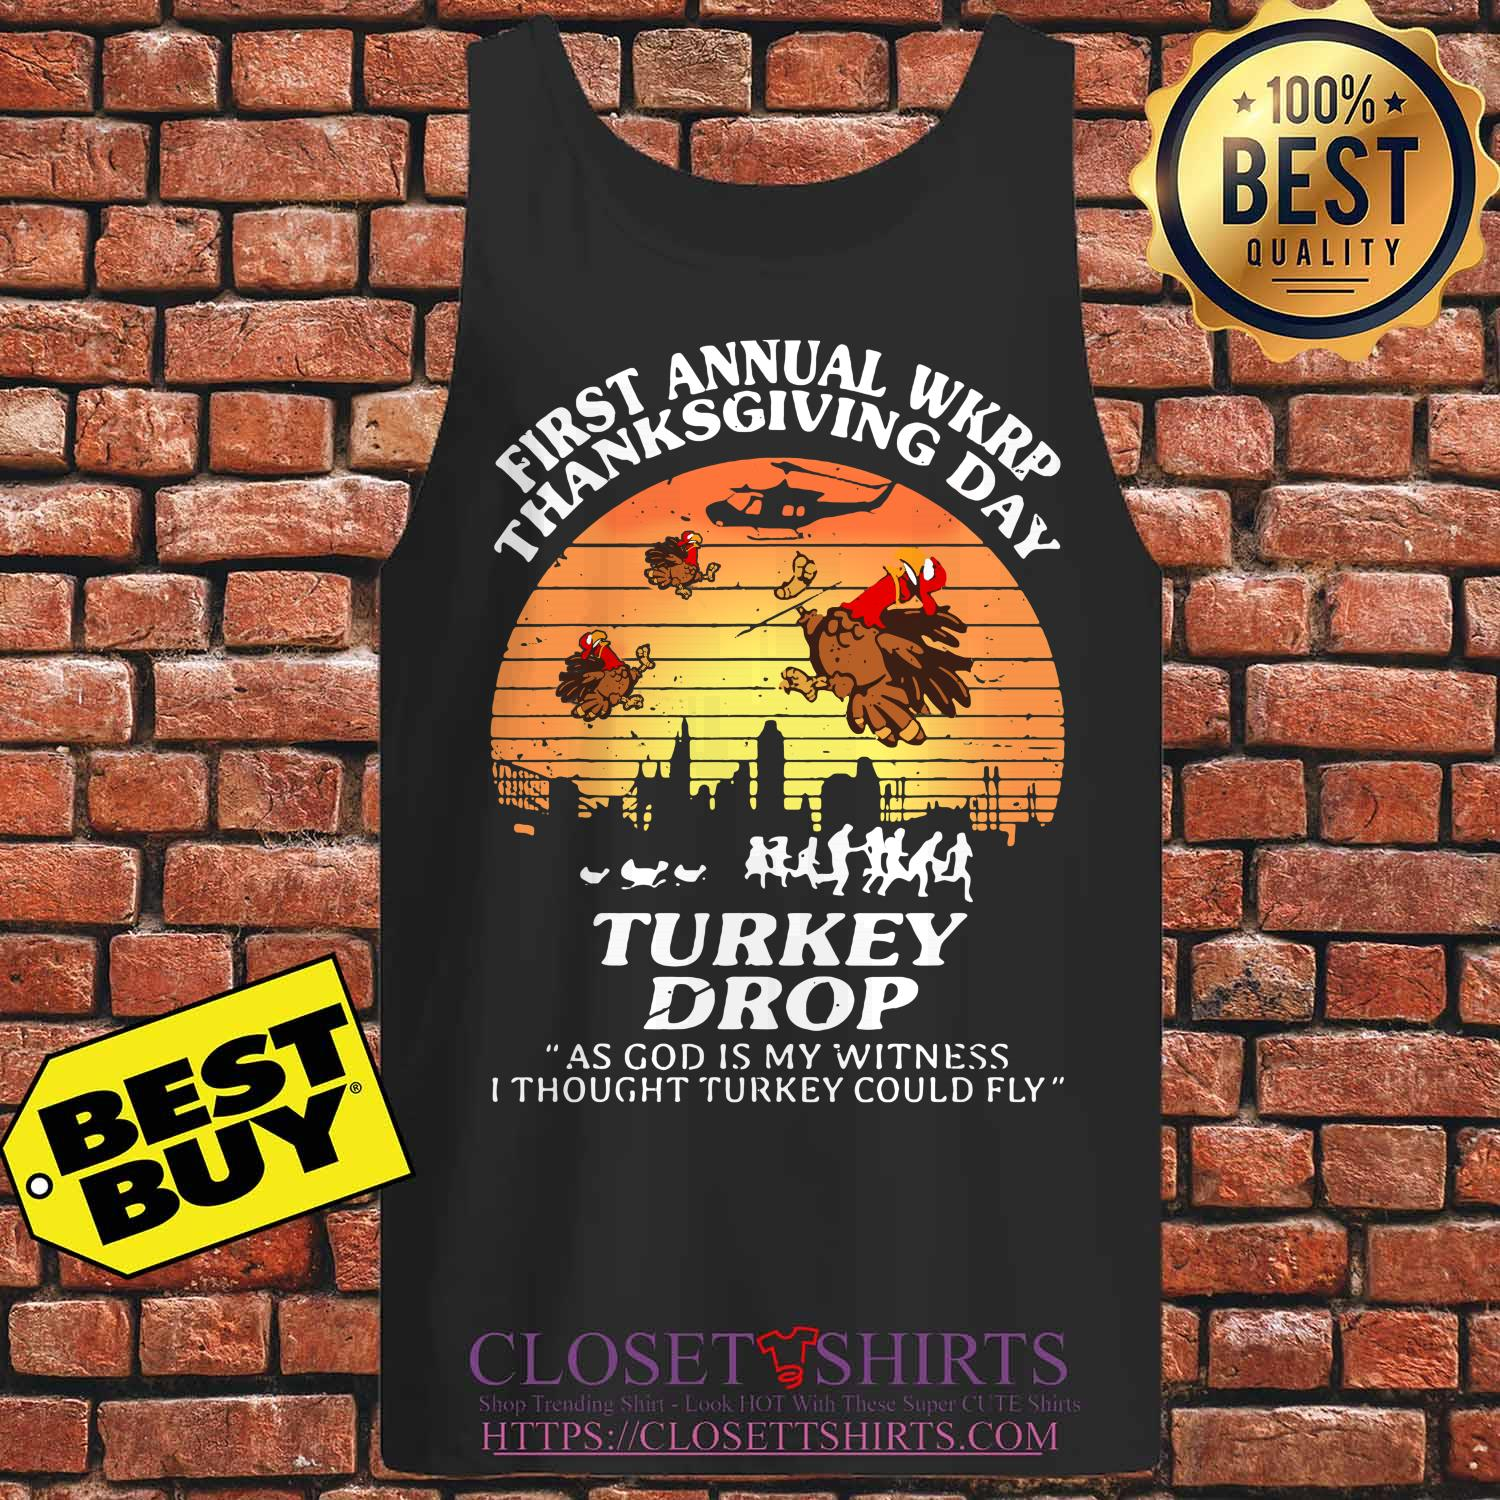 First Annual Wkrp Thanksgiving Day Turkey Drop God Witness Thought Turkeys Fly Vintage Tank Top